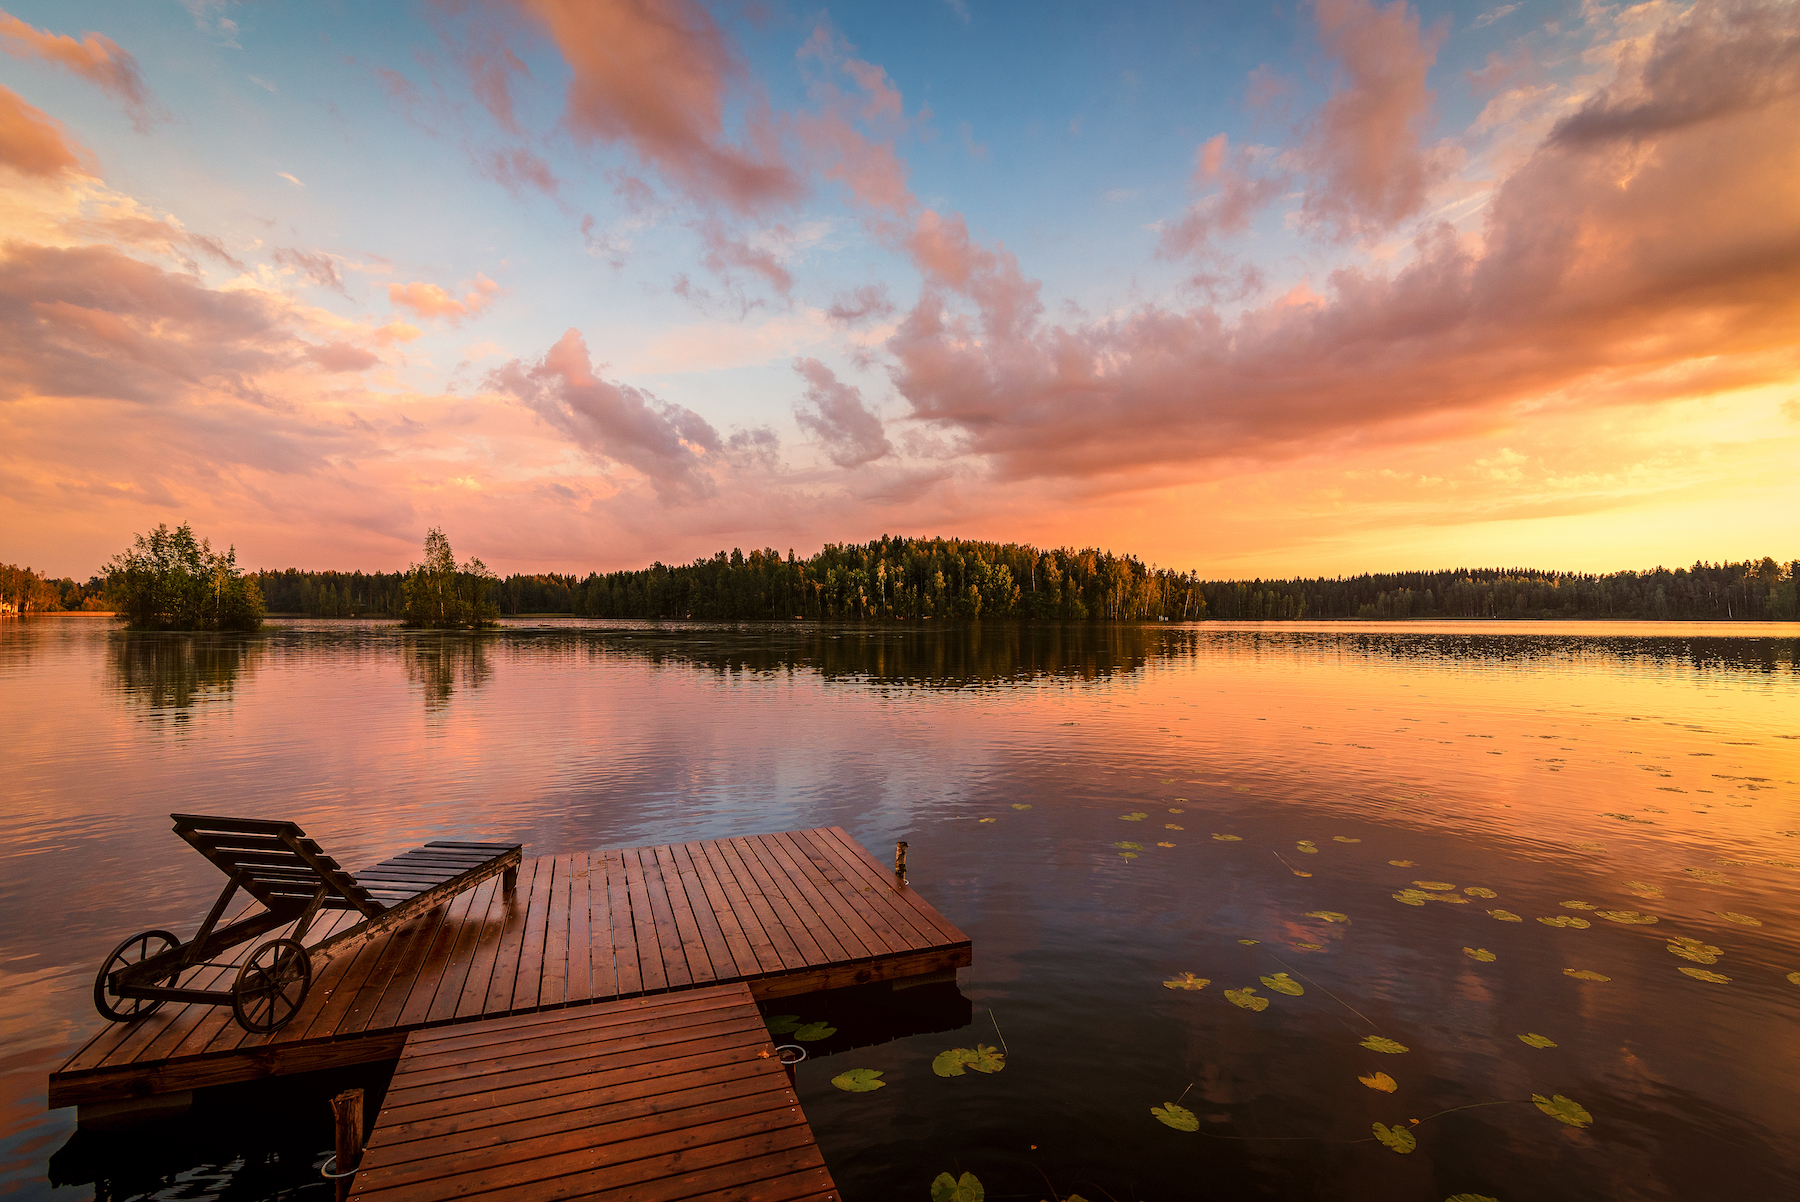 pier-chair-sunset-finland-thomas-drouault-portfolio.jpg